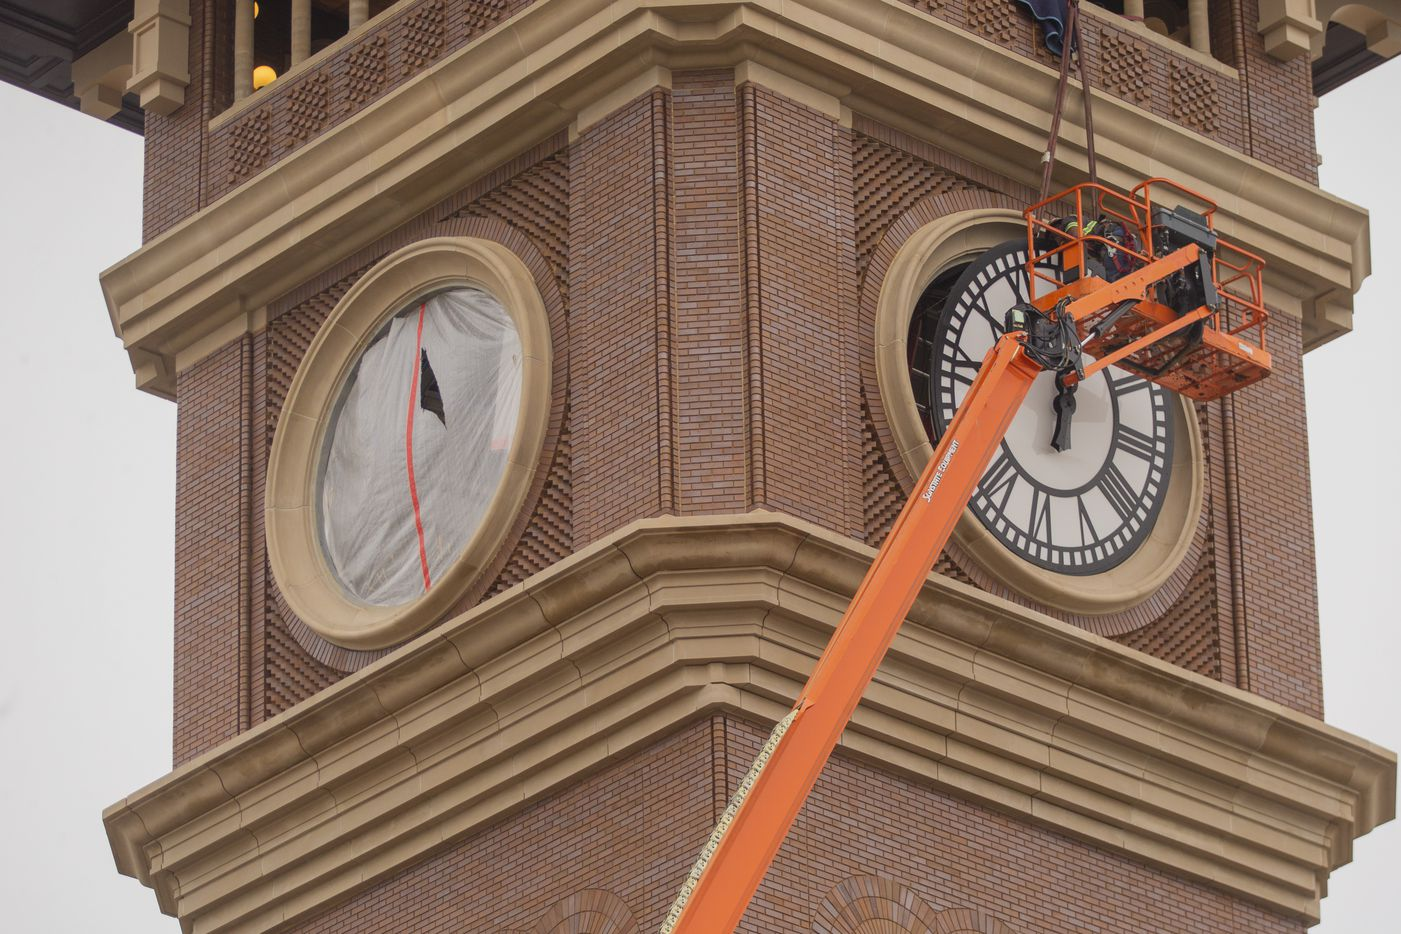 Workers from MEI Rigging & Crating work to install a 12-foot glass clock on the Grapevine Main Station's Observation Tower on Sept. 3, 2020 in Grapevine. The clocks designed by Electric Time Company were designed to be compatible with the Texas-Italianate style of the station. (Juan Figueroa/ The Dallas Morning News)